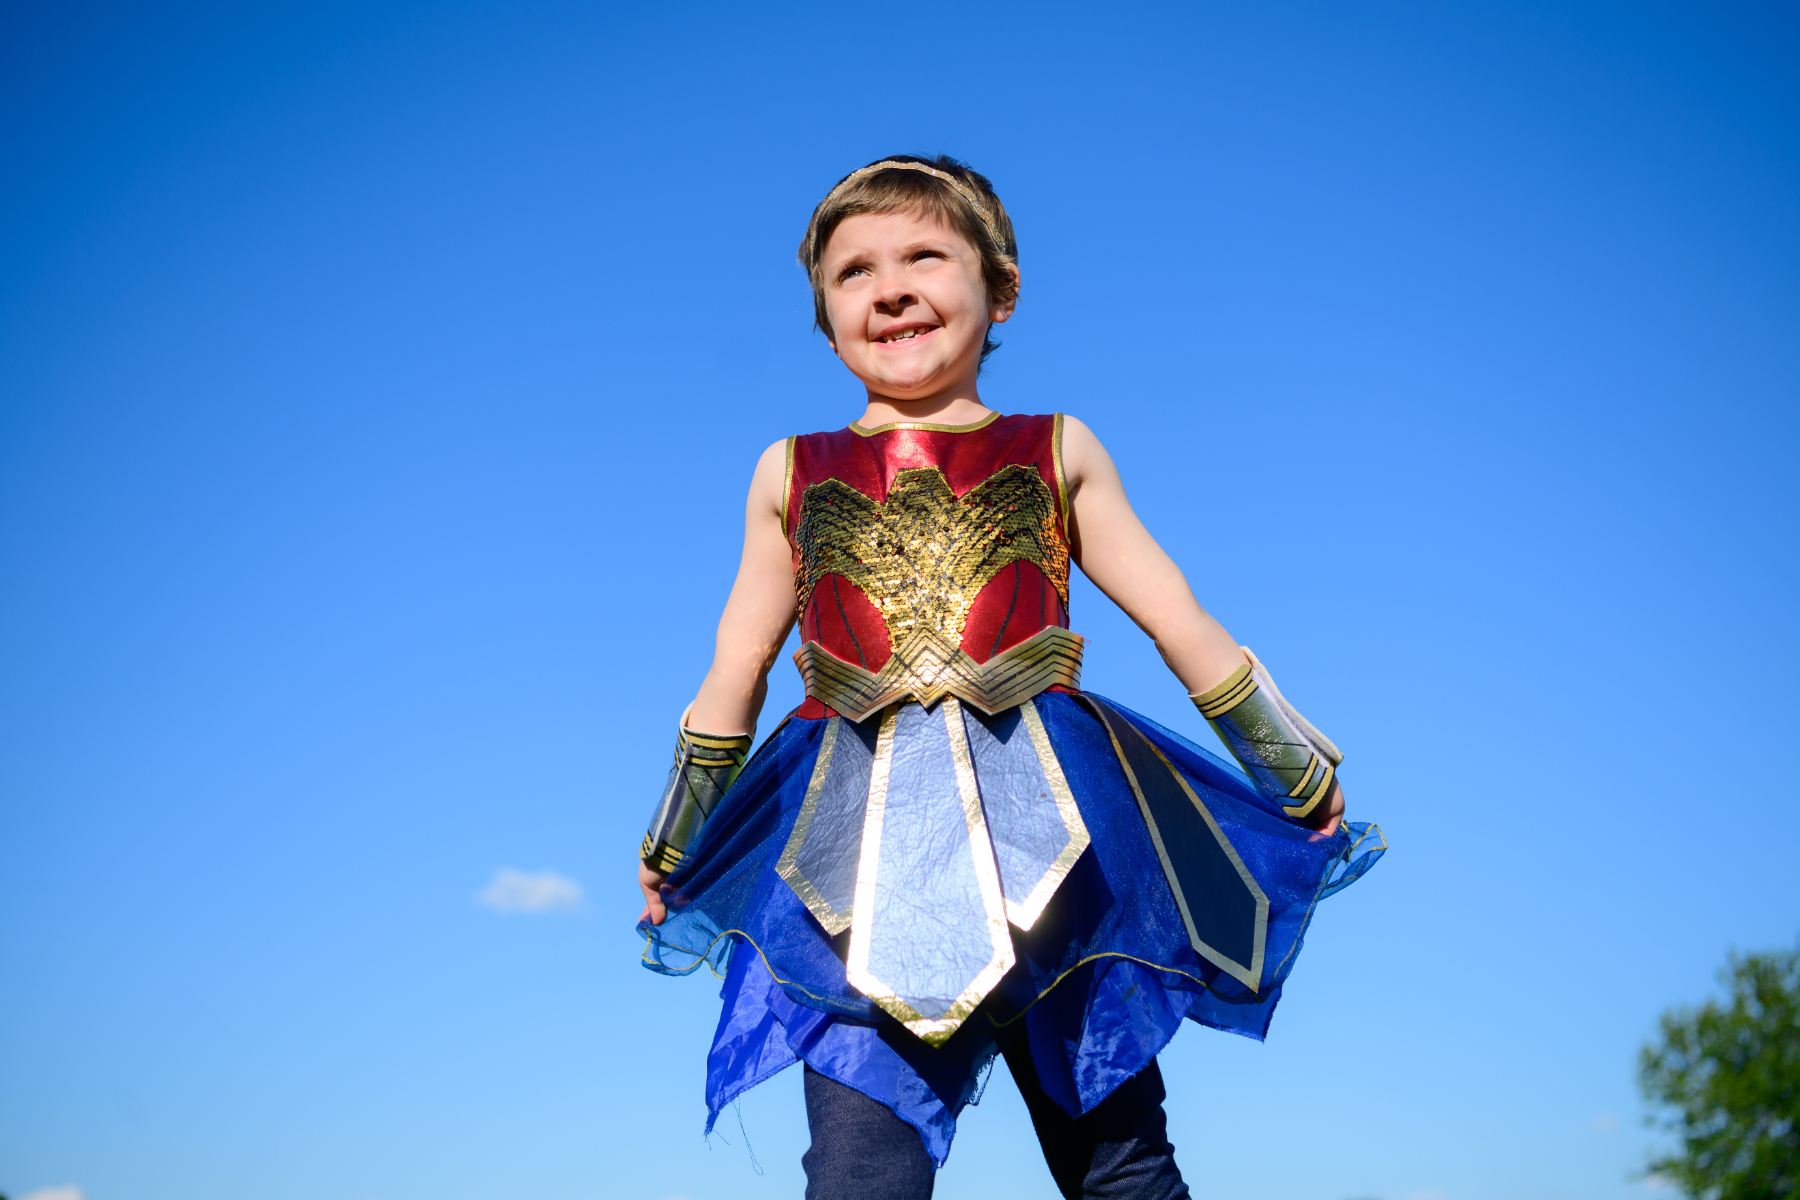 Leorah, a young white girl with short light brown hair, smiles as she stands in a field while wearing a Wonder Woman costume.